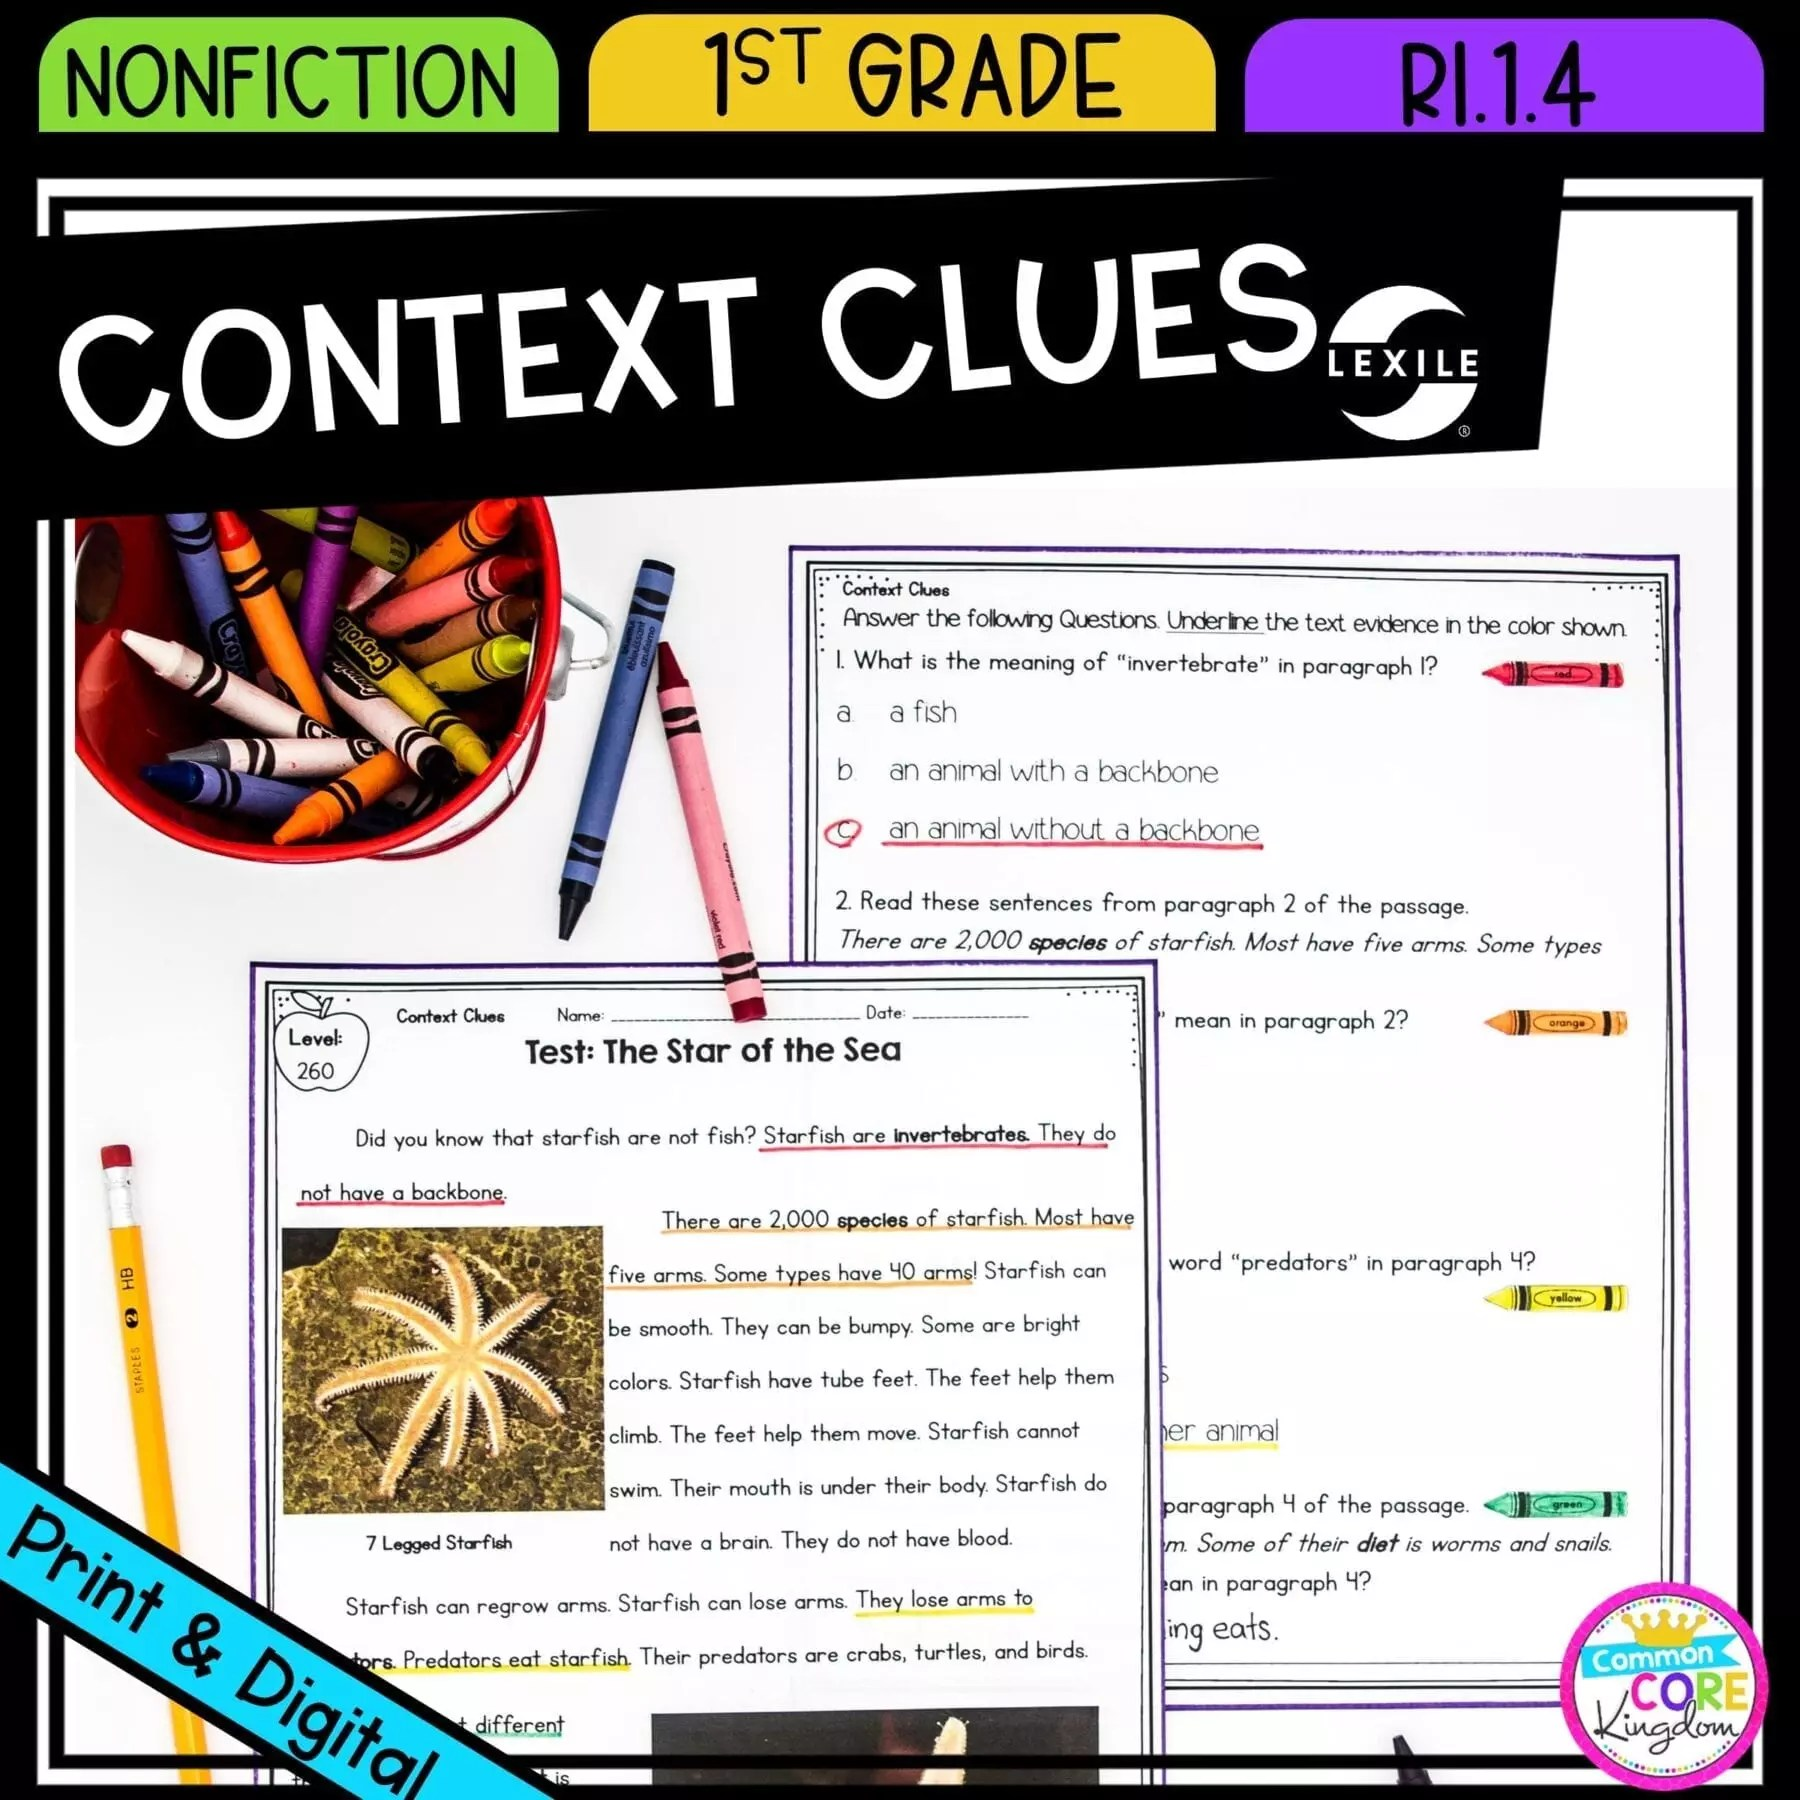 hight resolution of Context Clues in Nonfiction - 1st Grade - RI.1.4 Printable \u0026 Digital Google  Slides Distance Learning   Common Core Kingdom